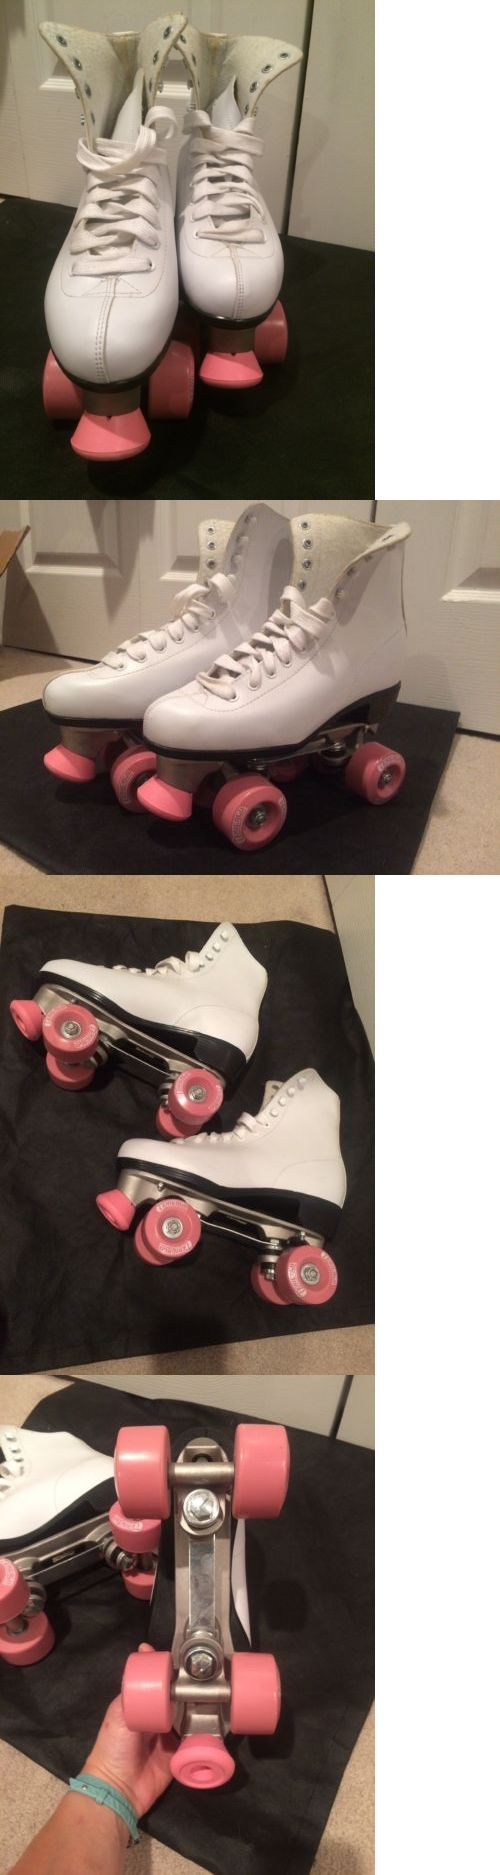 Amazing Indoor Roller Skating Chicago Ladies Quad Skates Size White And Pink New